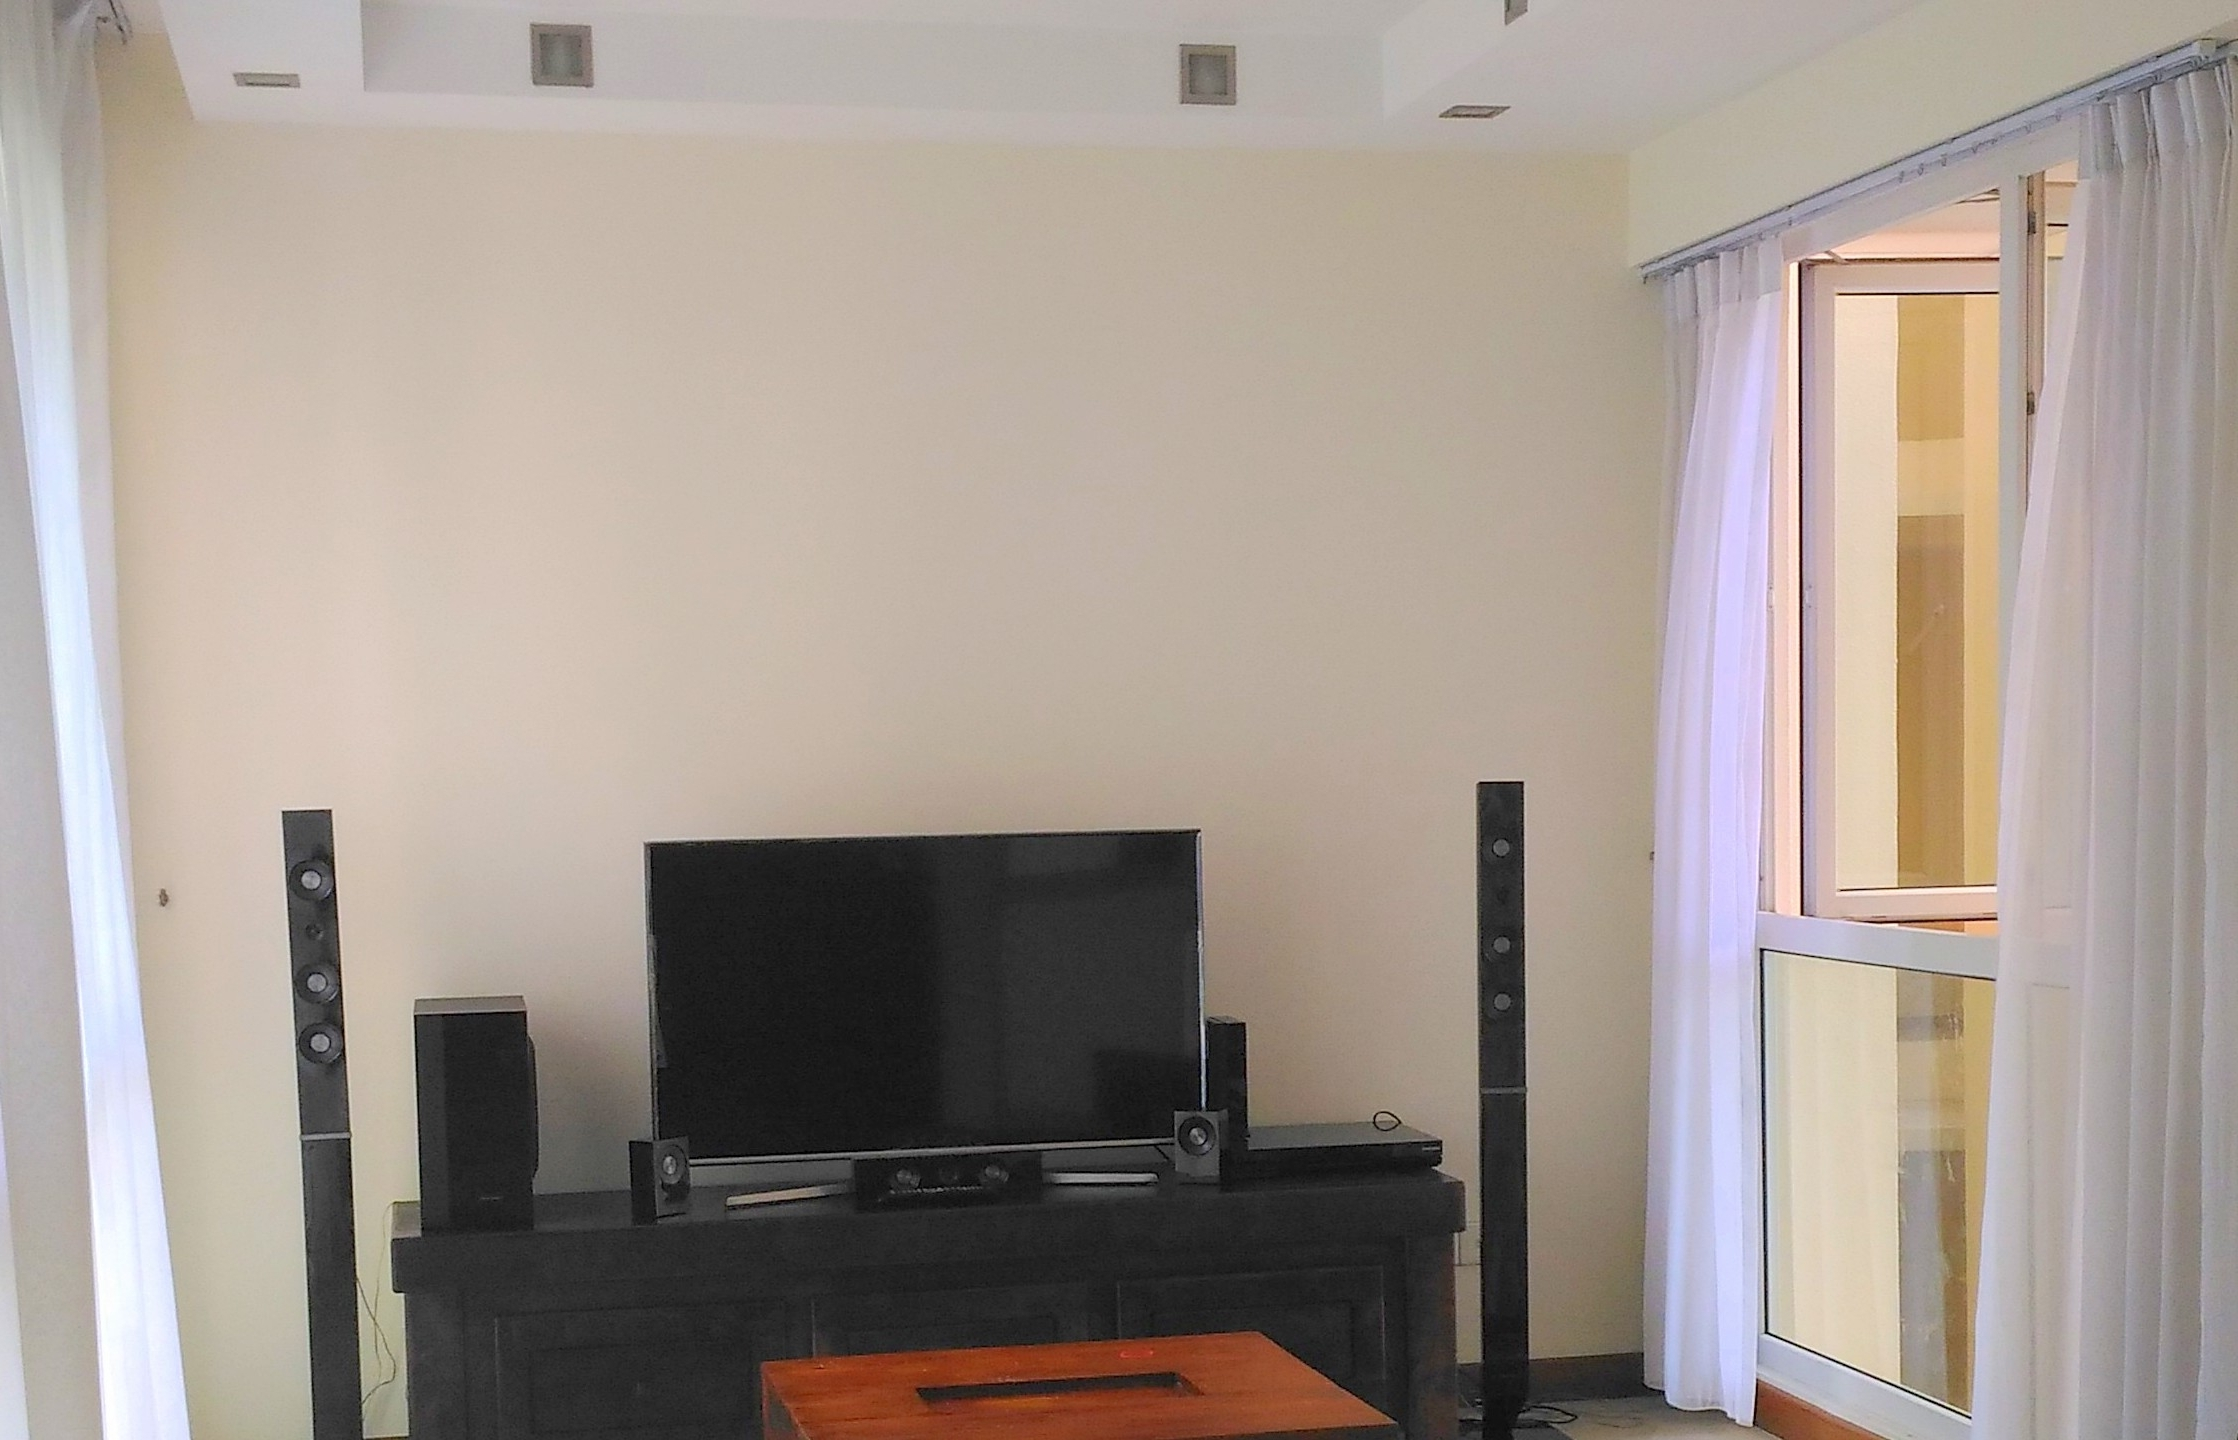 Nippon Paint Pre Painting Guide! Mums And Babies 20+ Nippon Paint Living Room Ideas